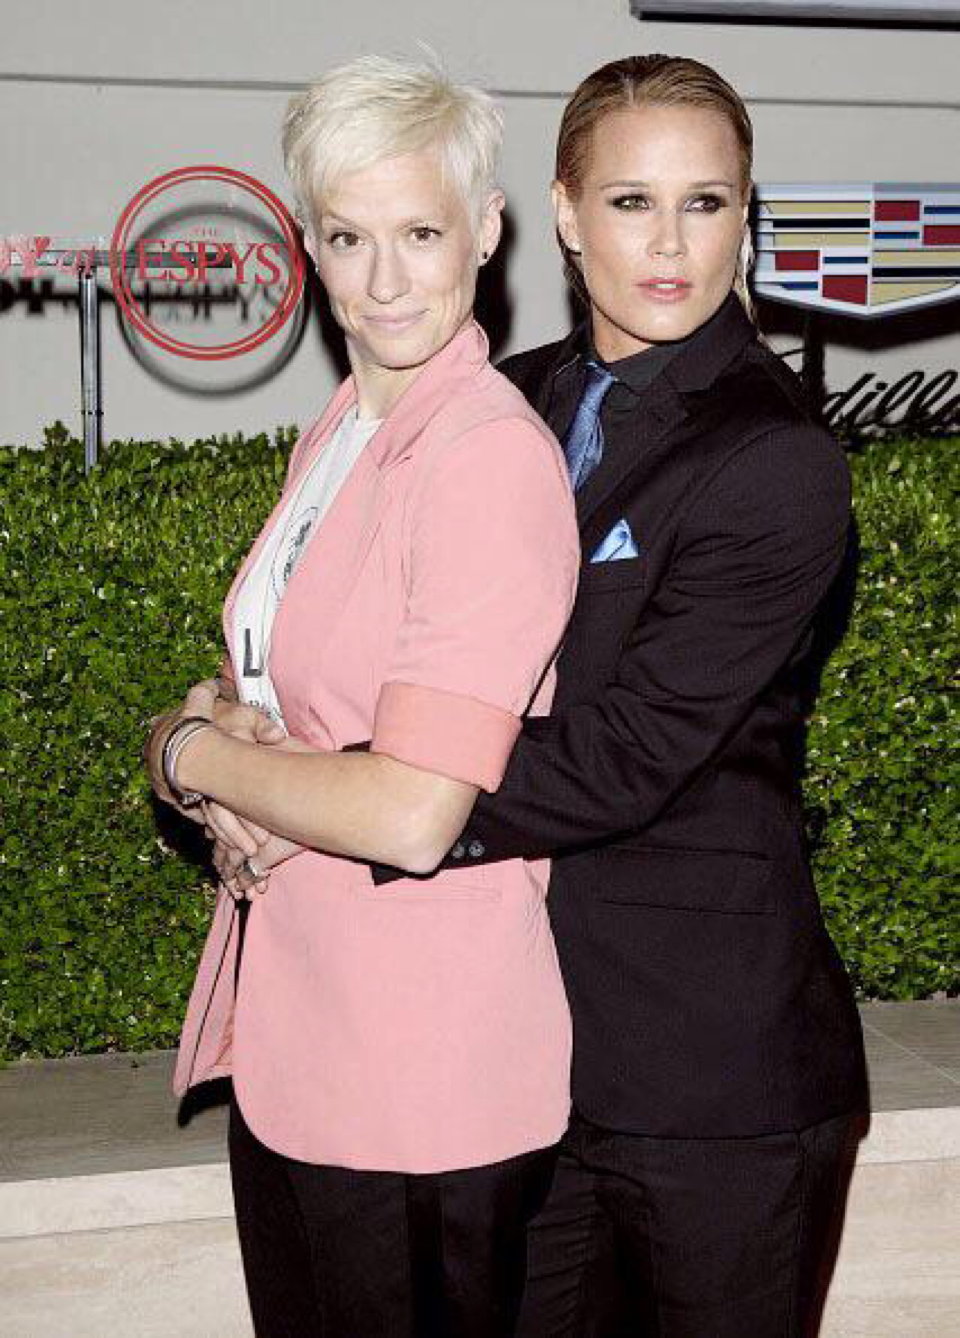 The gals official prom pic. @mPinoe